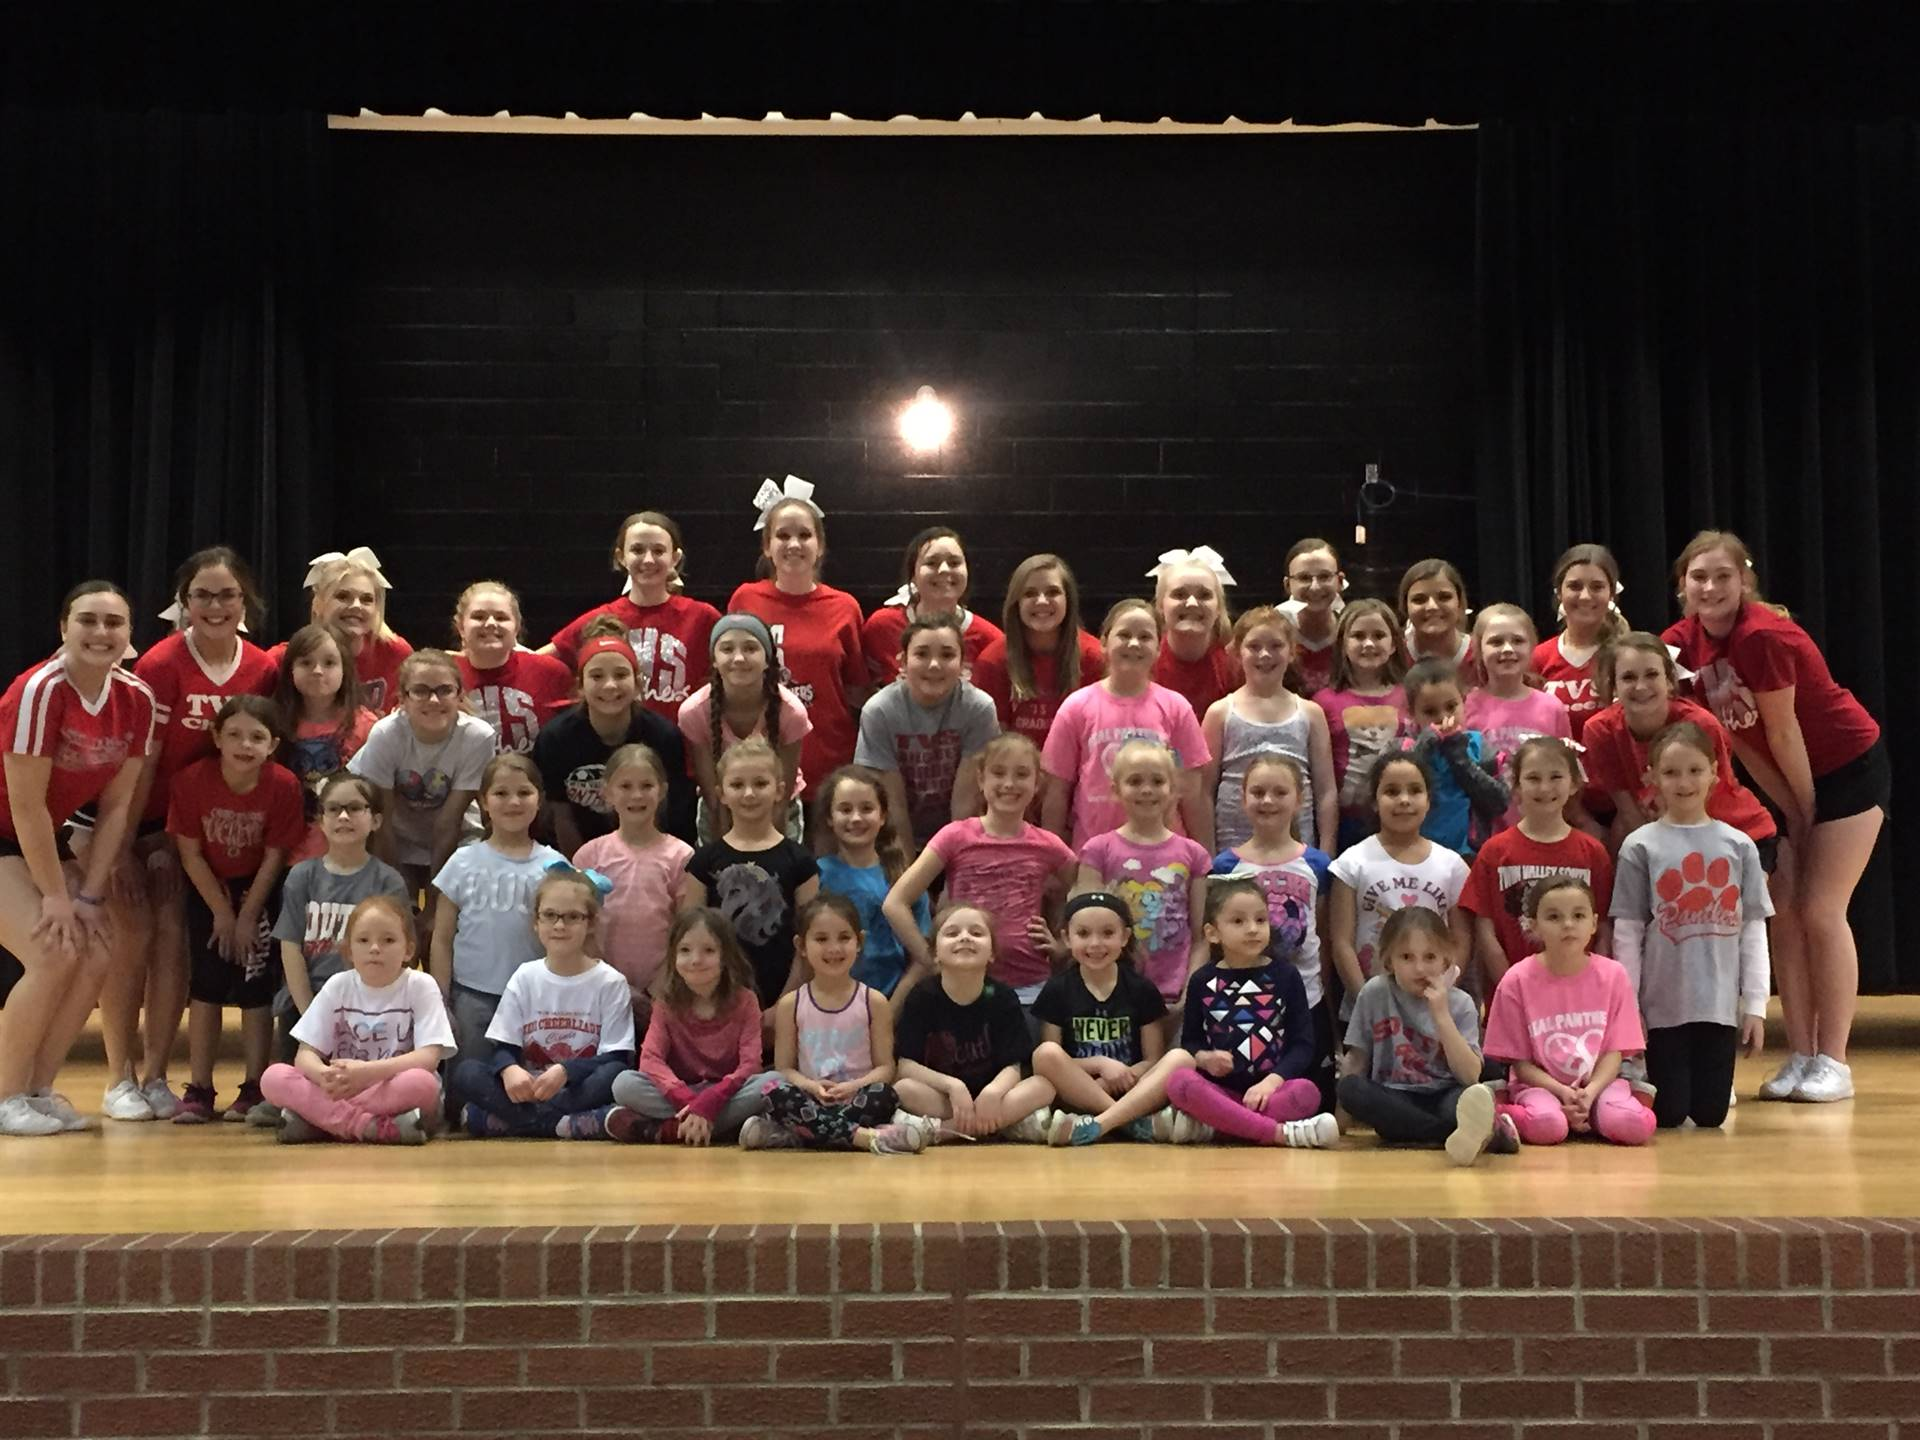 Youth cheer camp participants